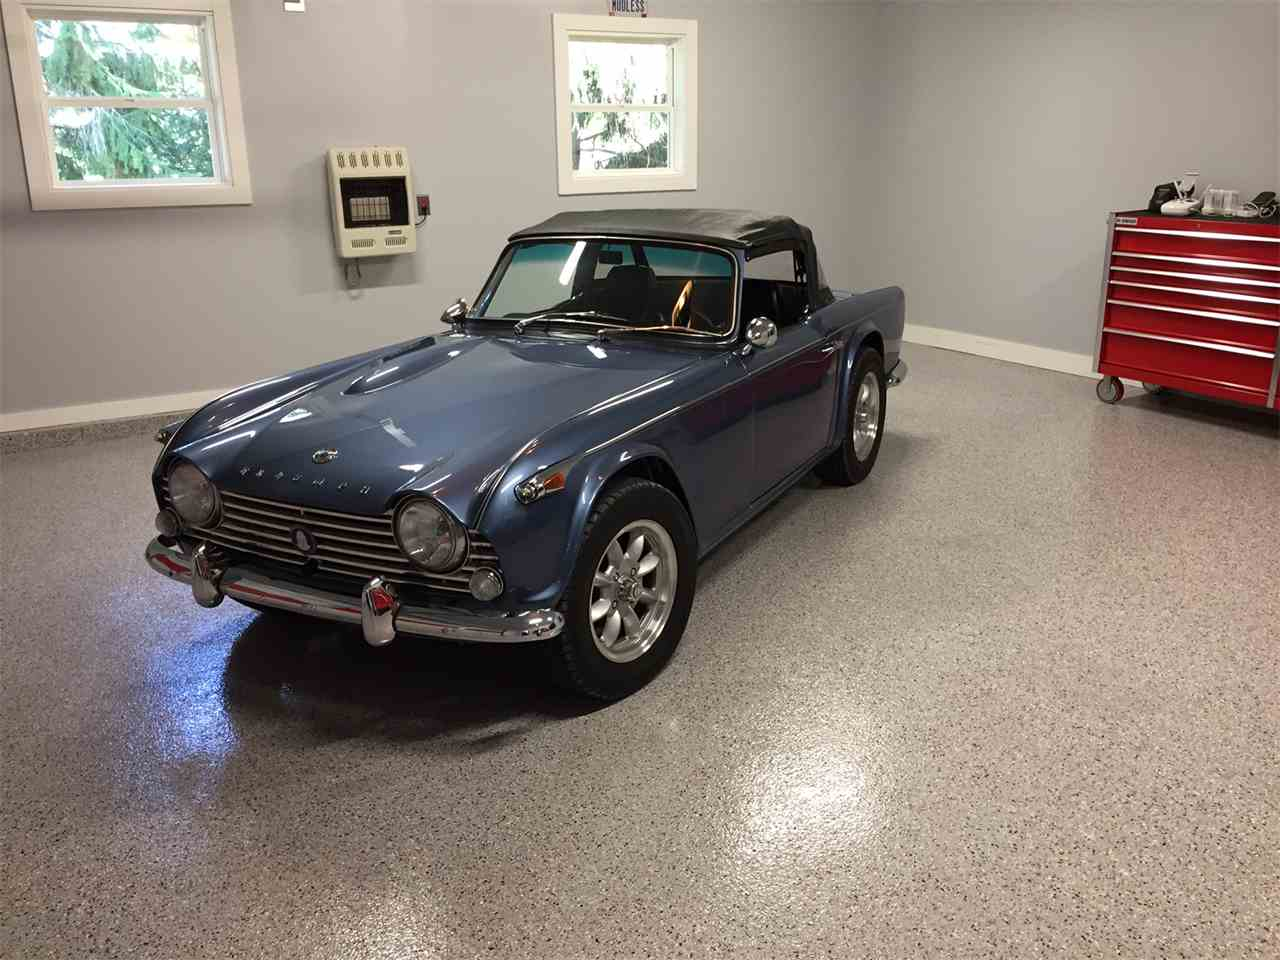 Large Picture of Classic '66 Triumph TR4 located in Florida - $34,900.00 Offered by a Private Seller - LSBT